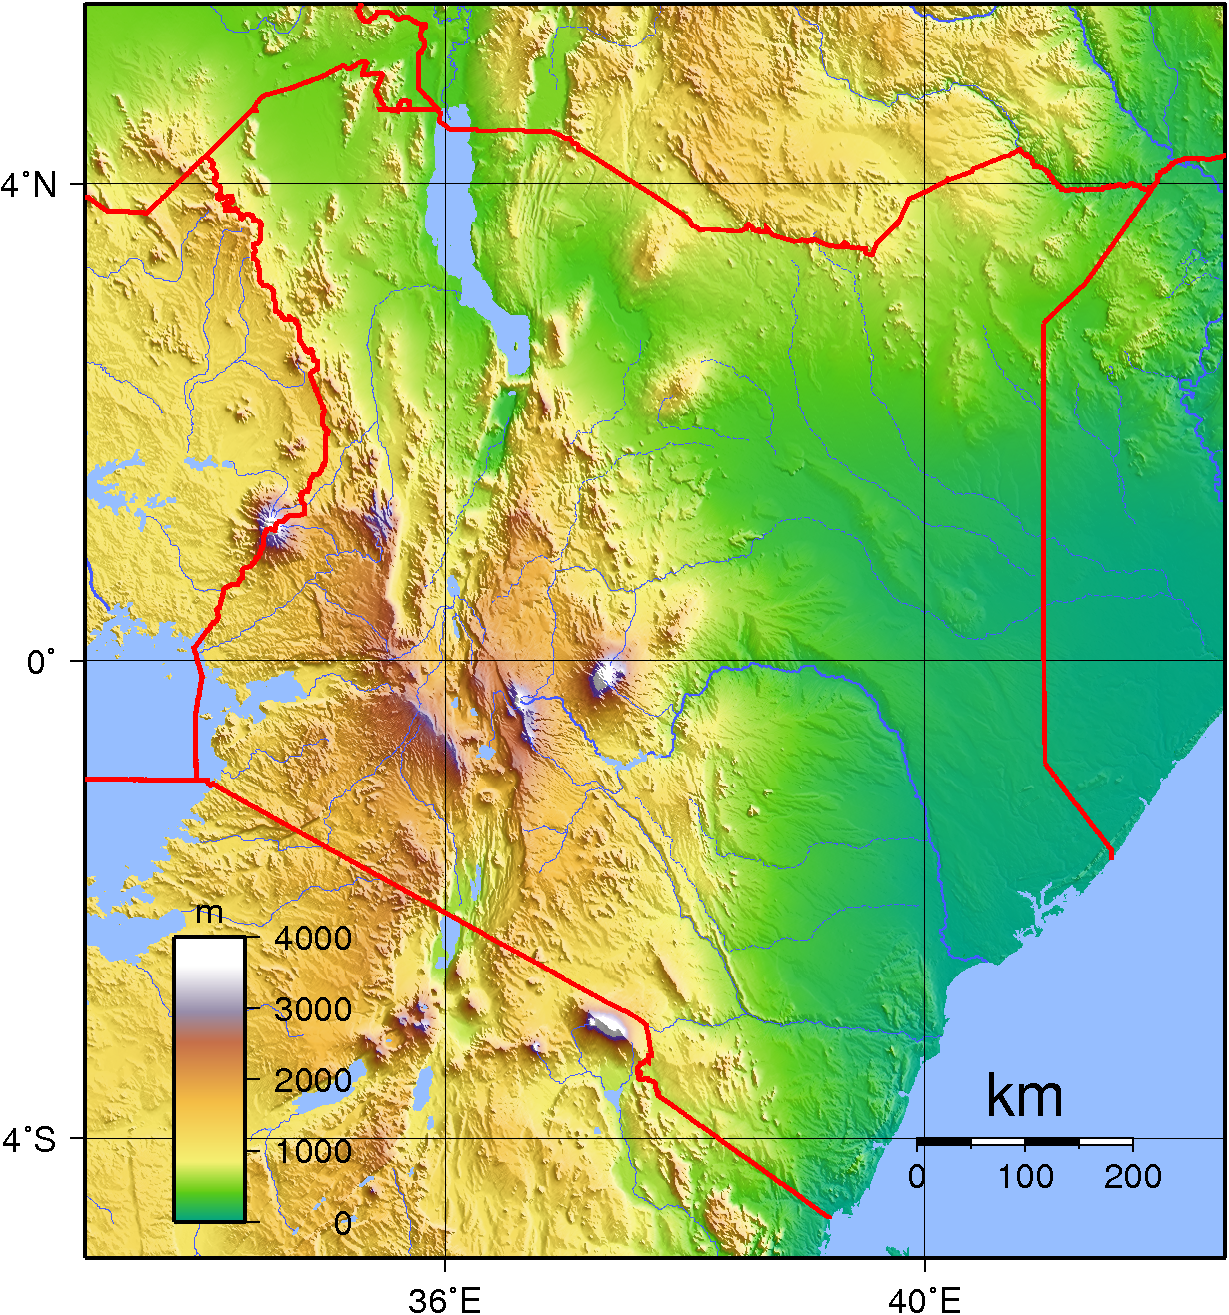 Filekenya topographyg wikimedia commons filekenya topographyg gumiabroncs Images